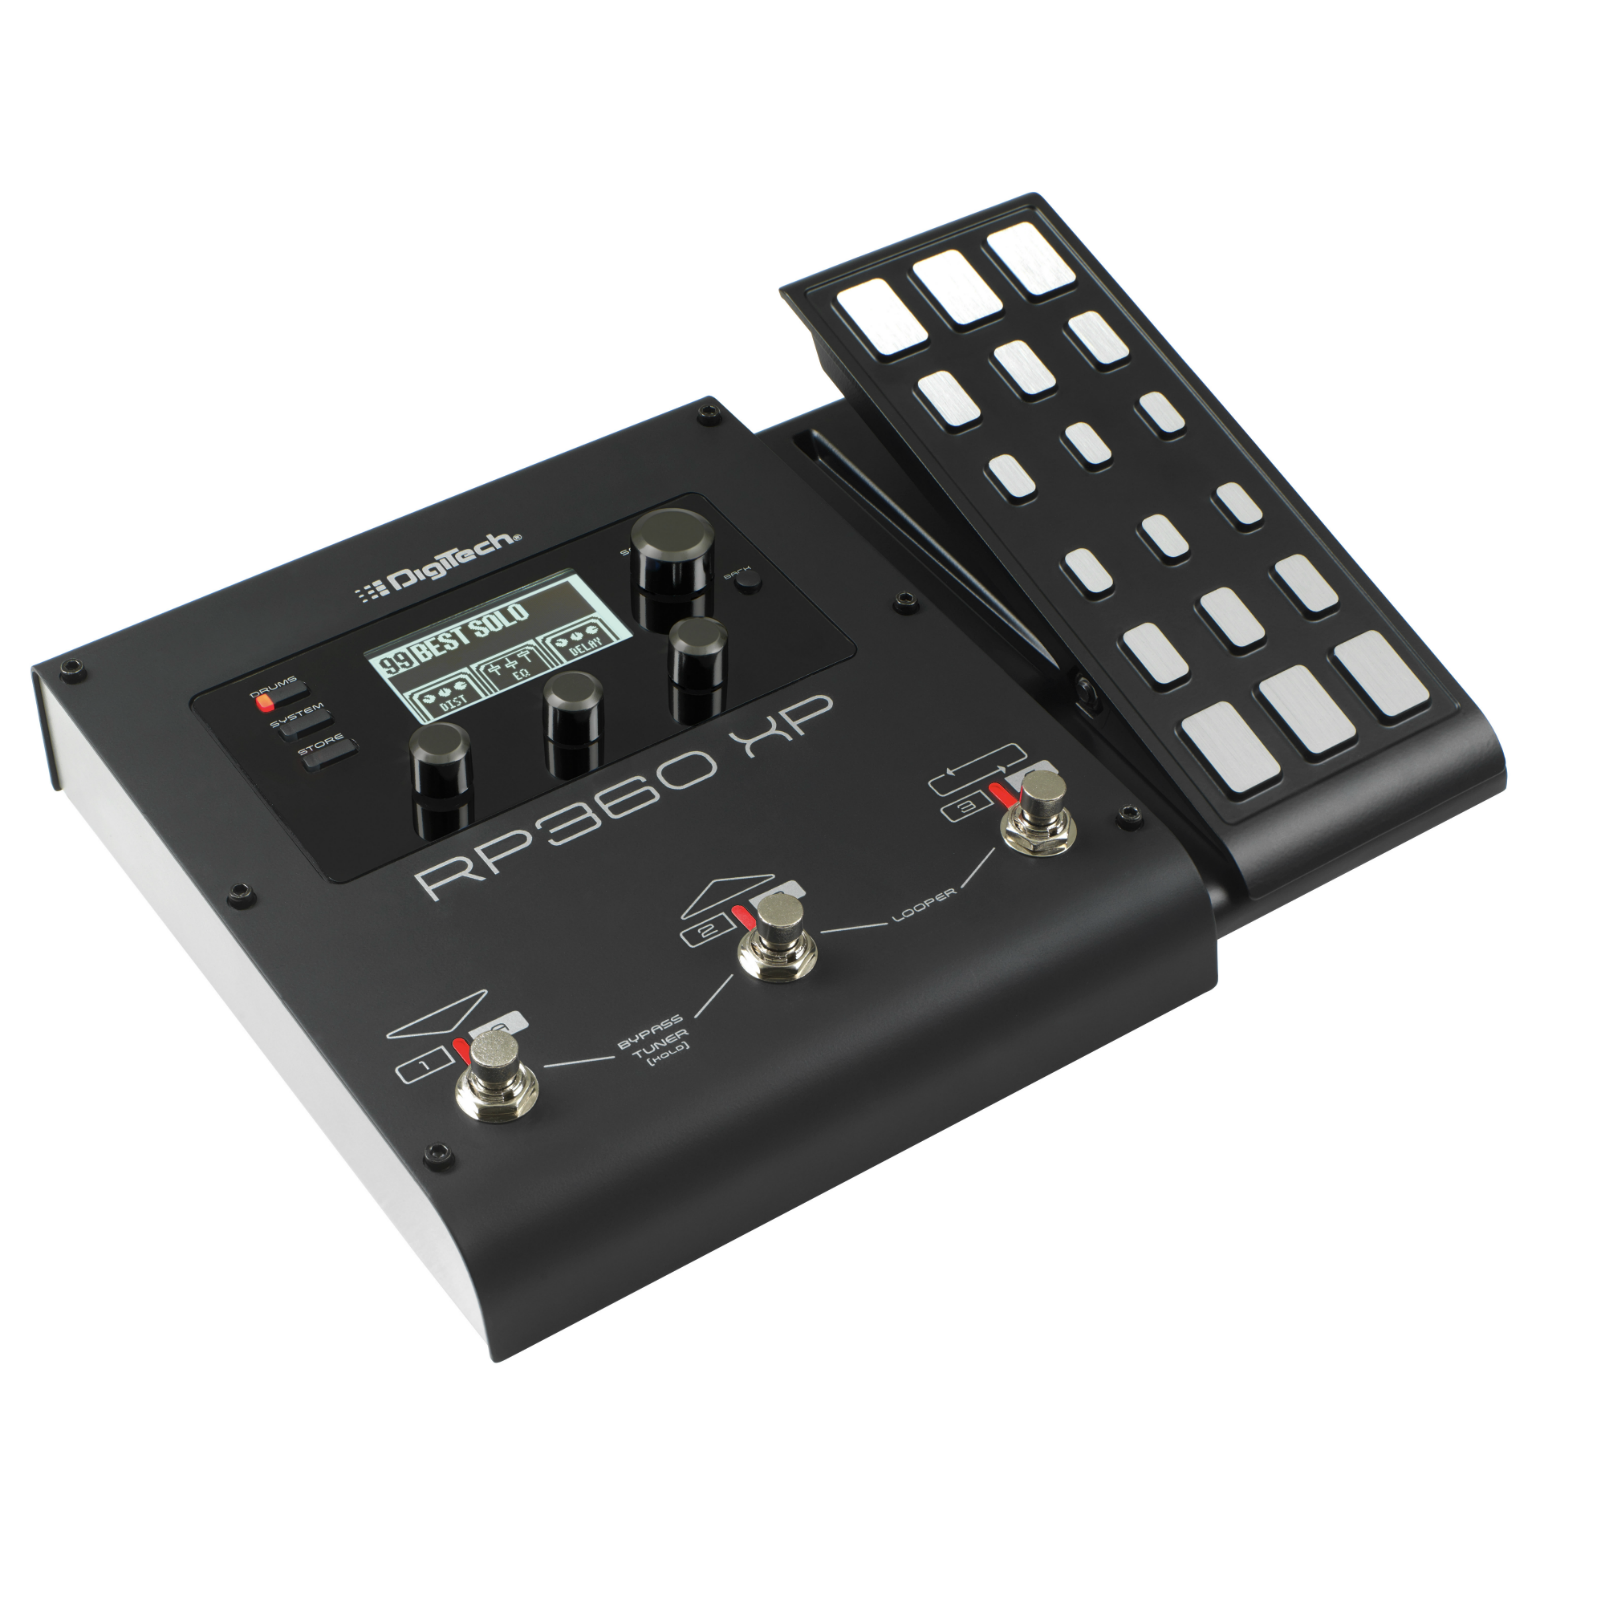 RP360 XP - Black - Guitar Multi-Effect Floor Processor with USB Streaming and Expression Pedal - Hero